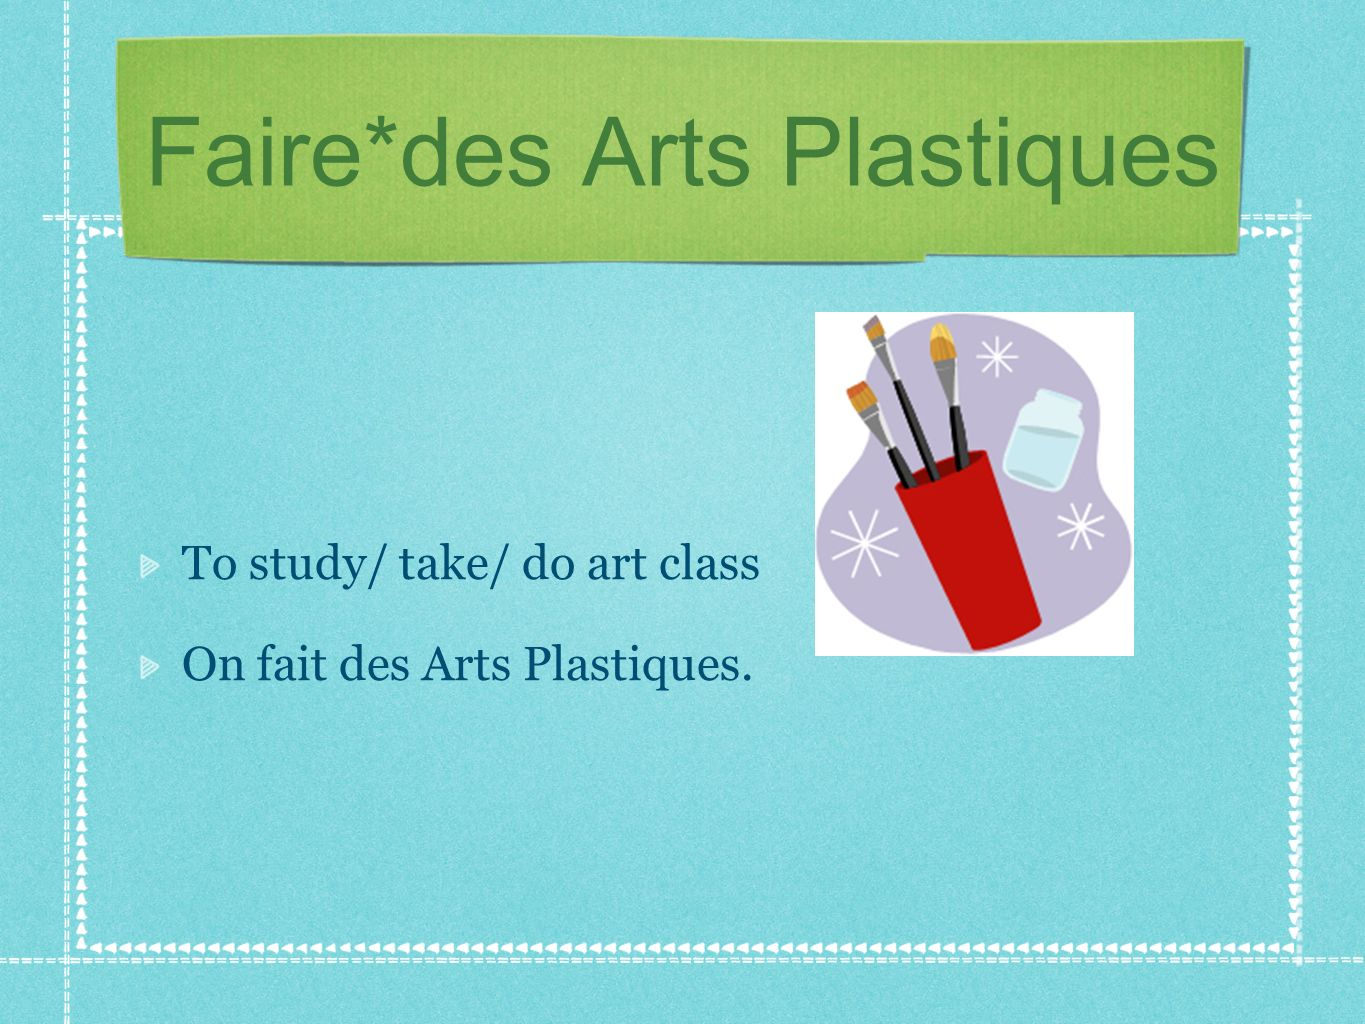 Faire* + de contraction + sport to show that you are practicing/ playing/ doing ANY sport.